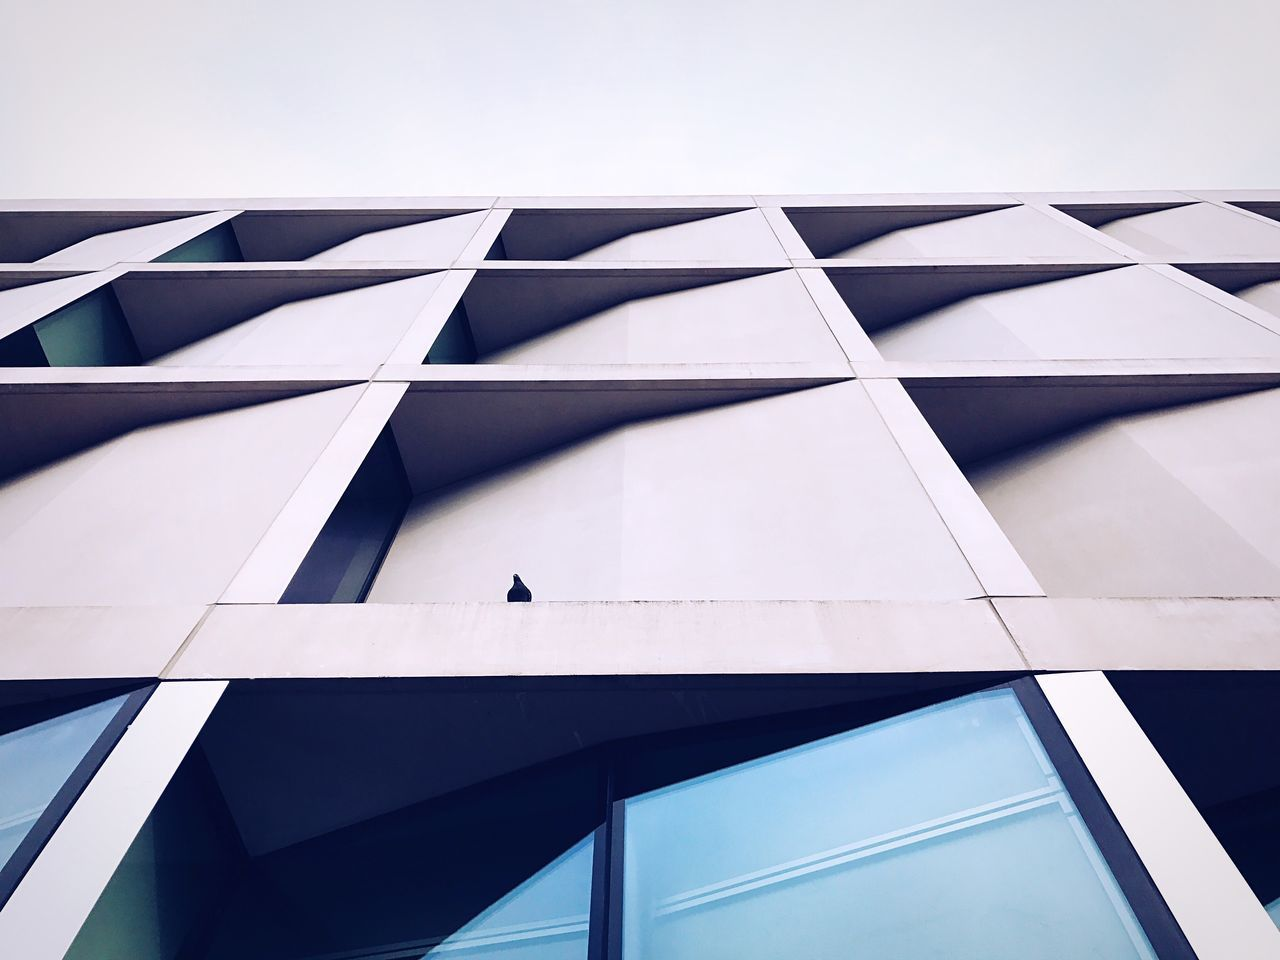 Low Angle View Architecture Built Structure Day Modern Real People Outdoors Building Exterior From My Point Of View Iphoneonly IPhoneography EyeEmBestPics EyeEm Best Shots Architecture Architecture_collection Window Windows Geometric Shape Lines Lines And Shapes Geometric Shapes Geometric Architecture